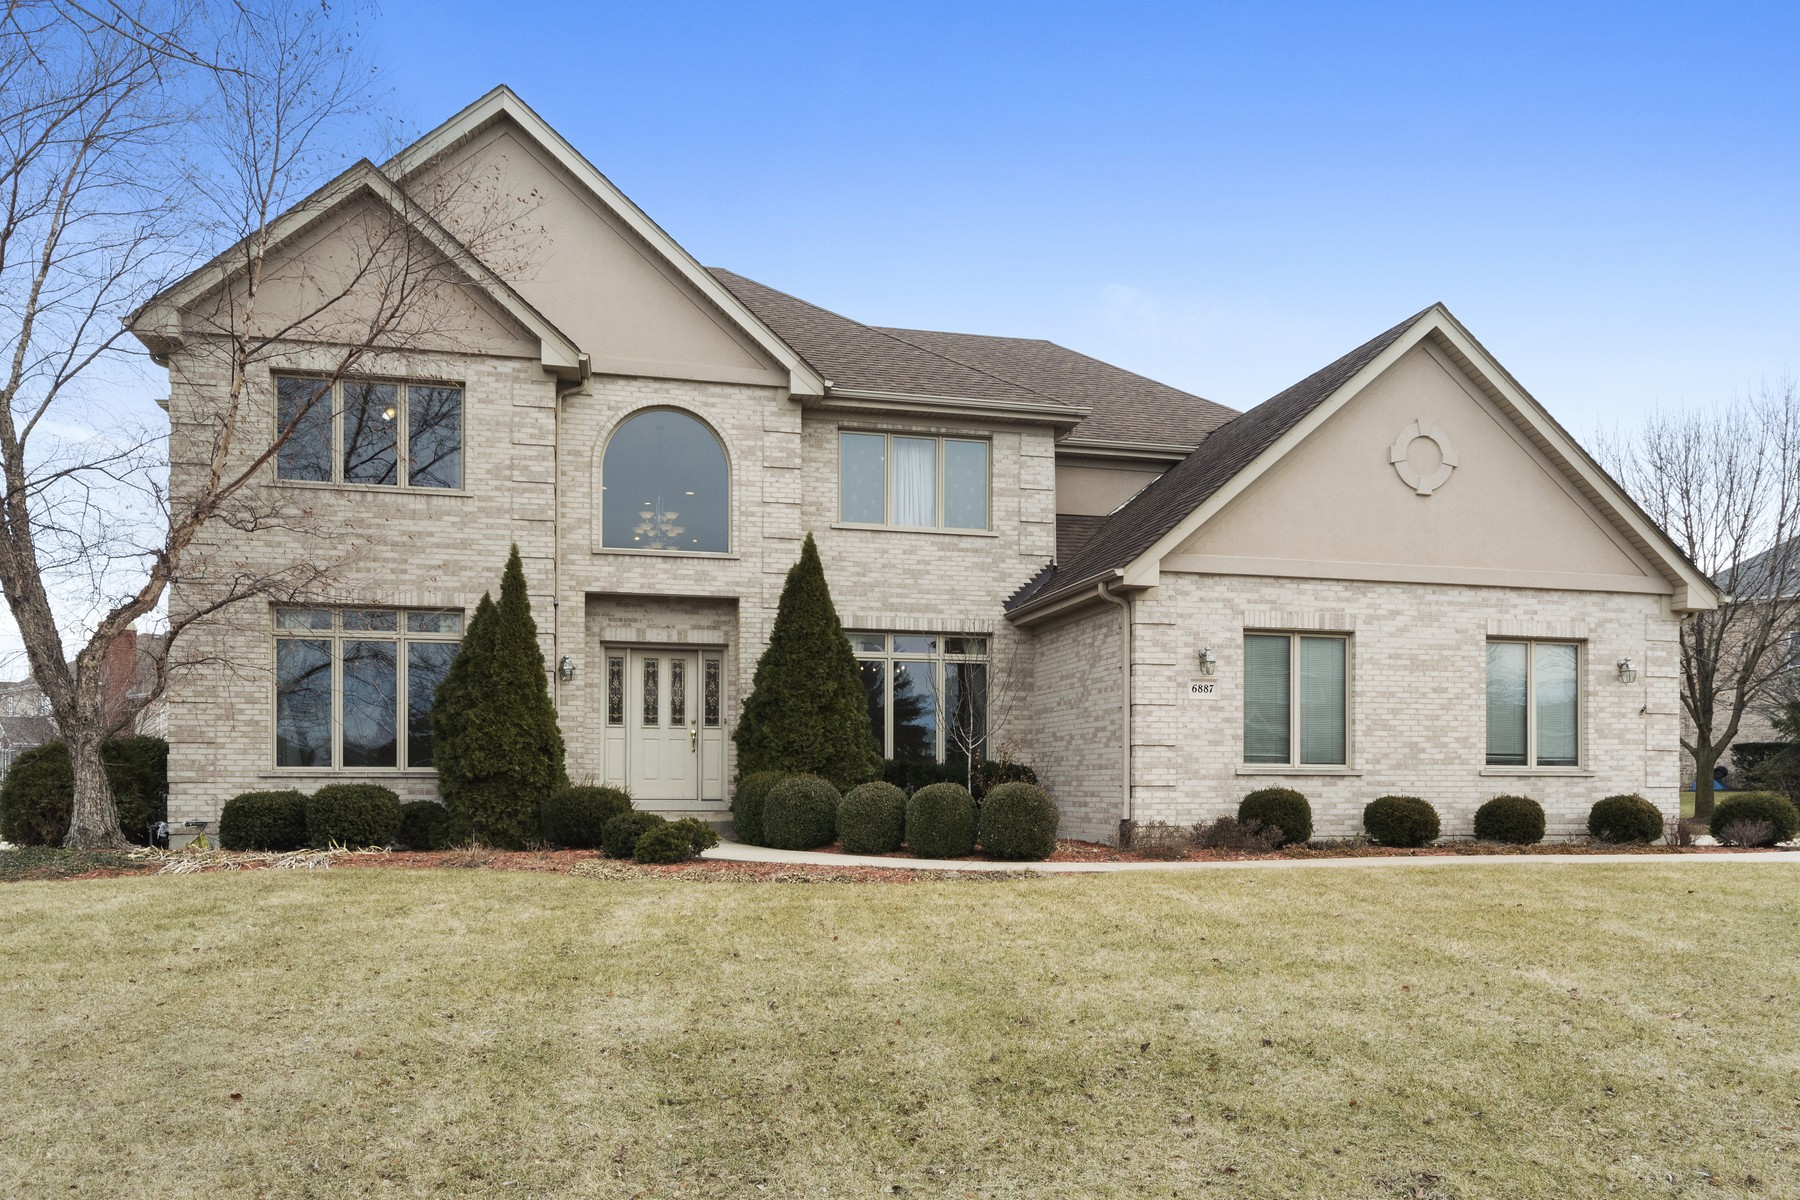 Villa per Vendita alle ore Prominently Positioned Burr Ridge Home 6887 Fieldstone Drive Burr Ridge, Illinois, 60527 Stati Uniti